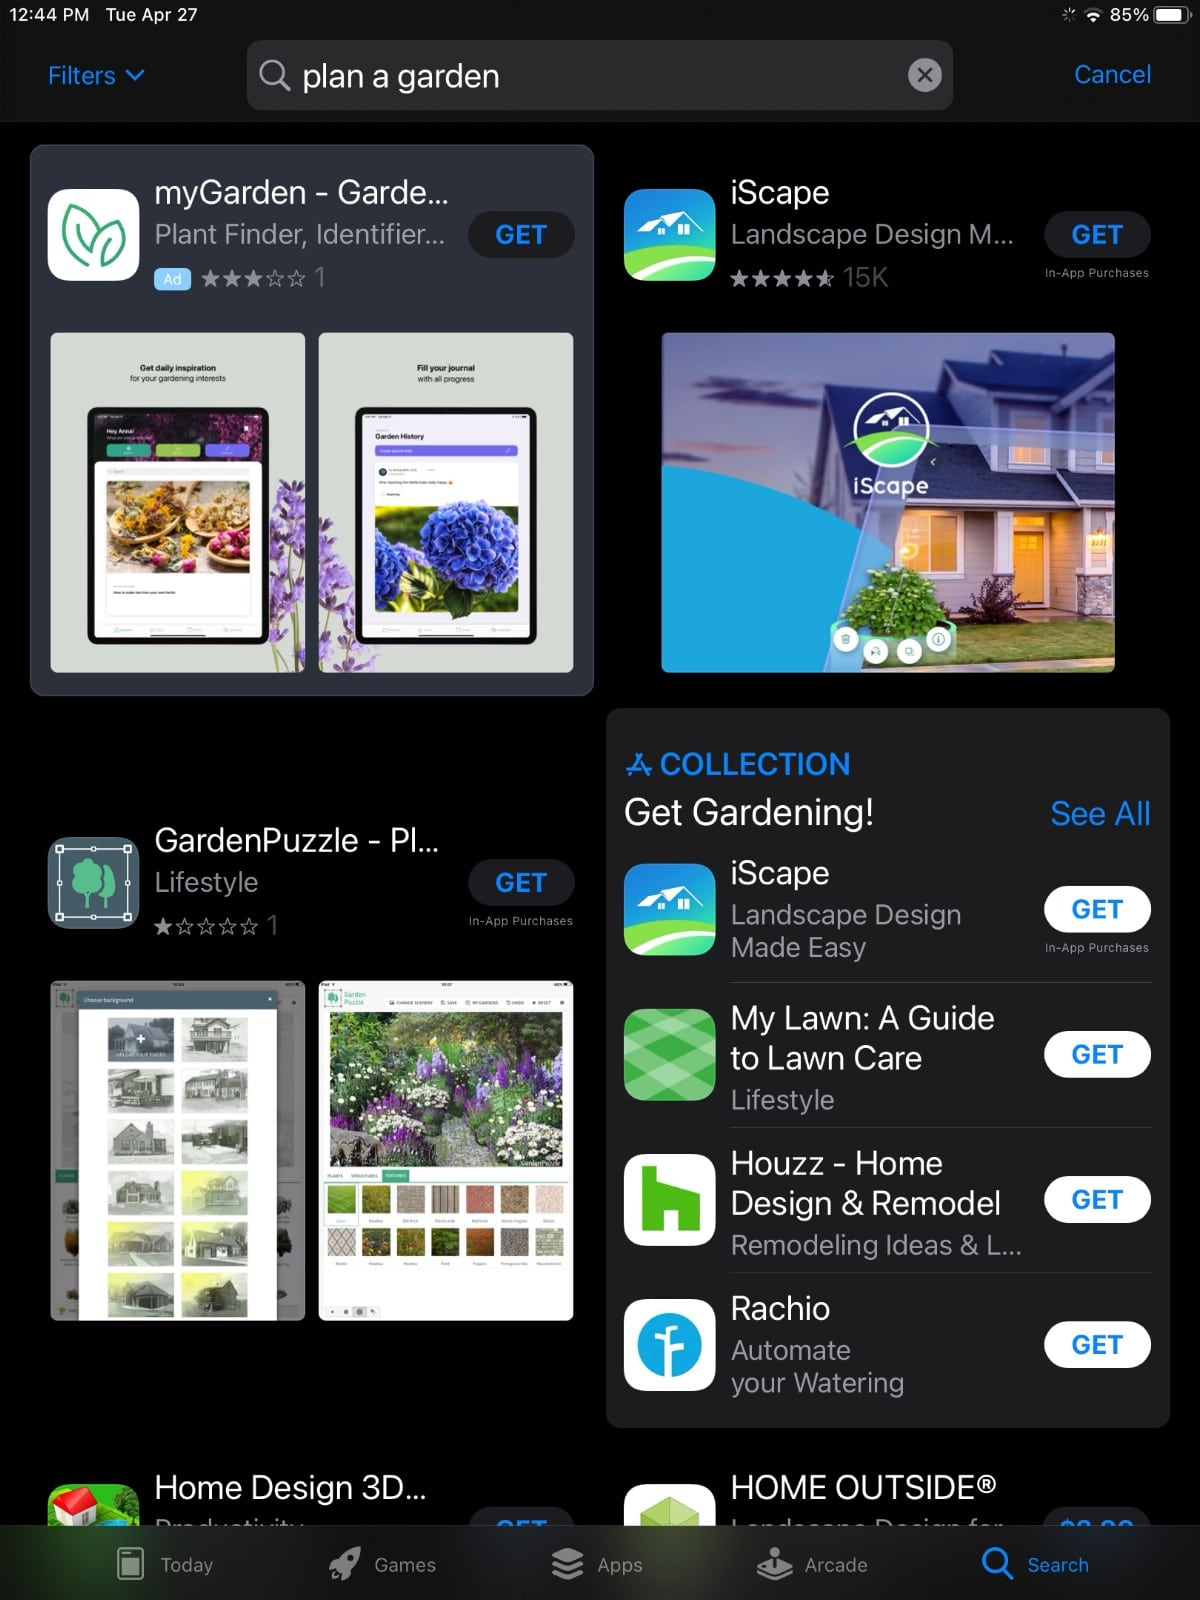 Apps available for garden planning